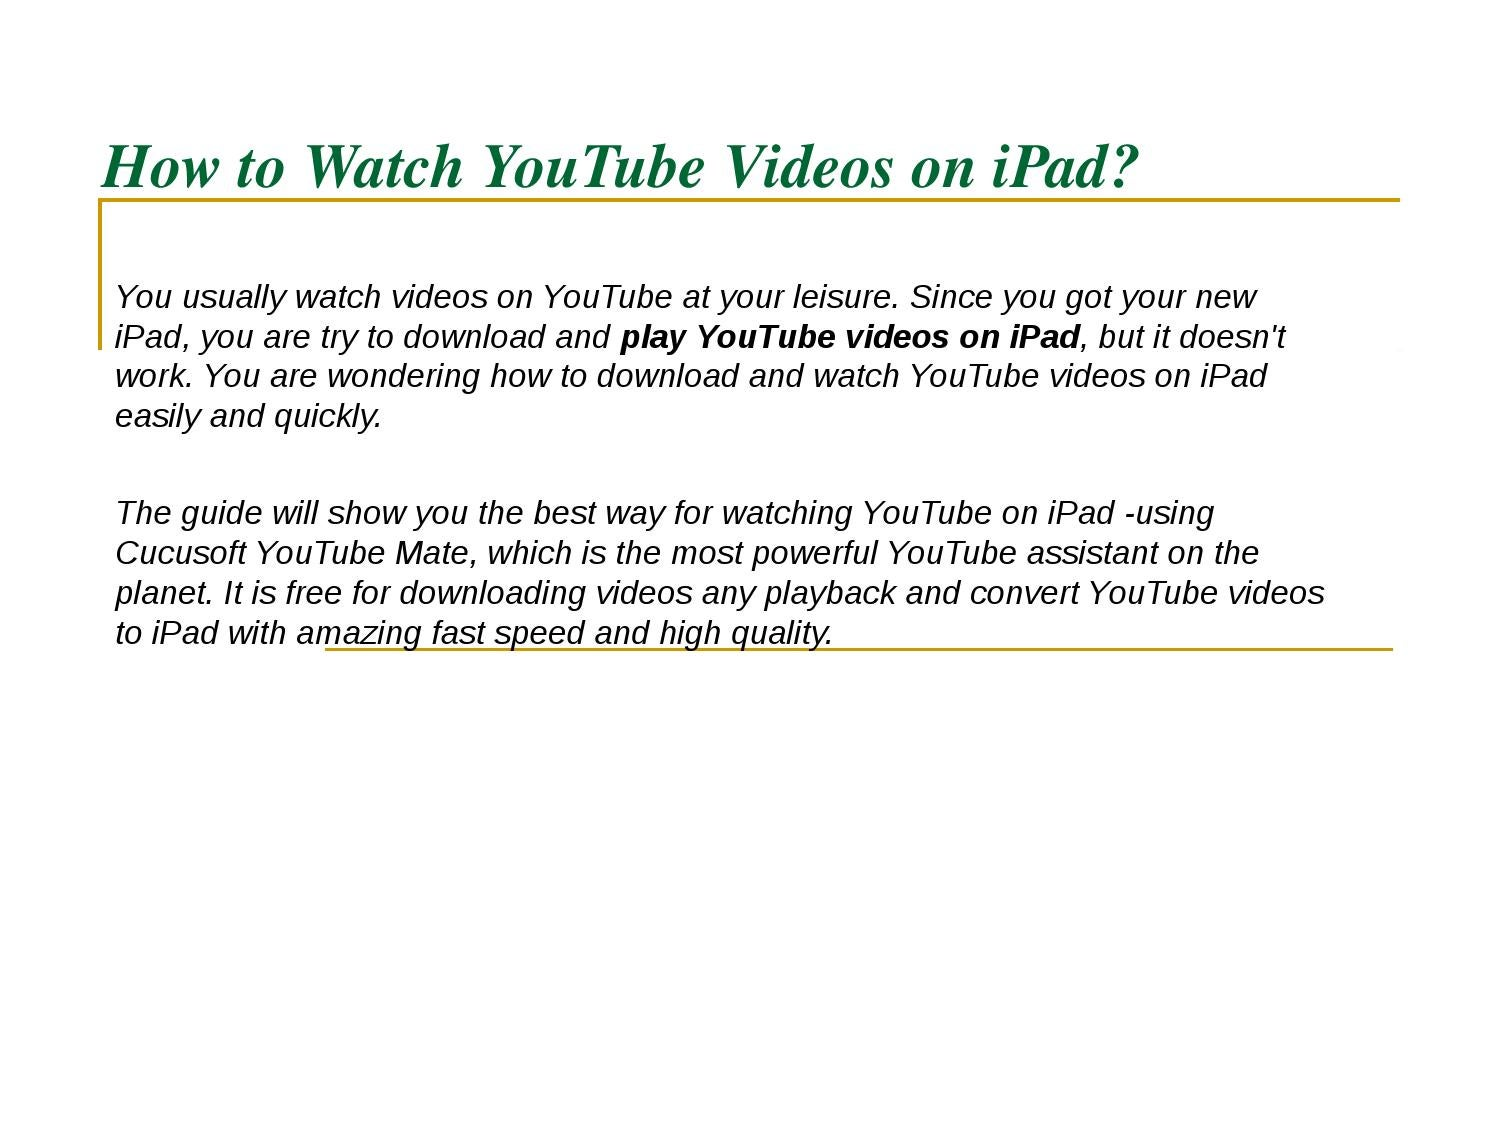 download from youtube to ipad free